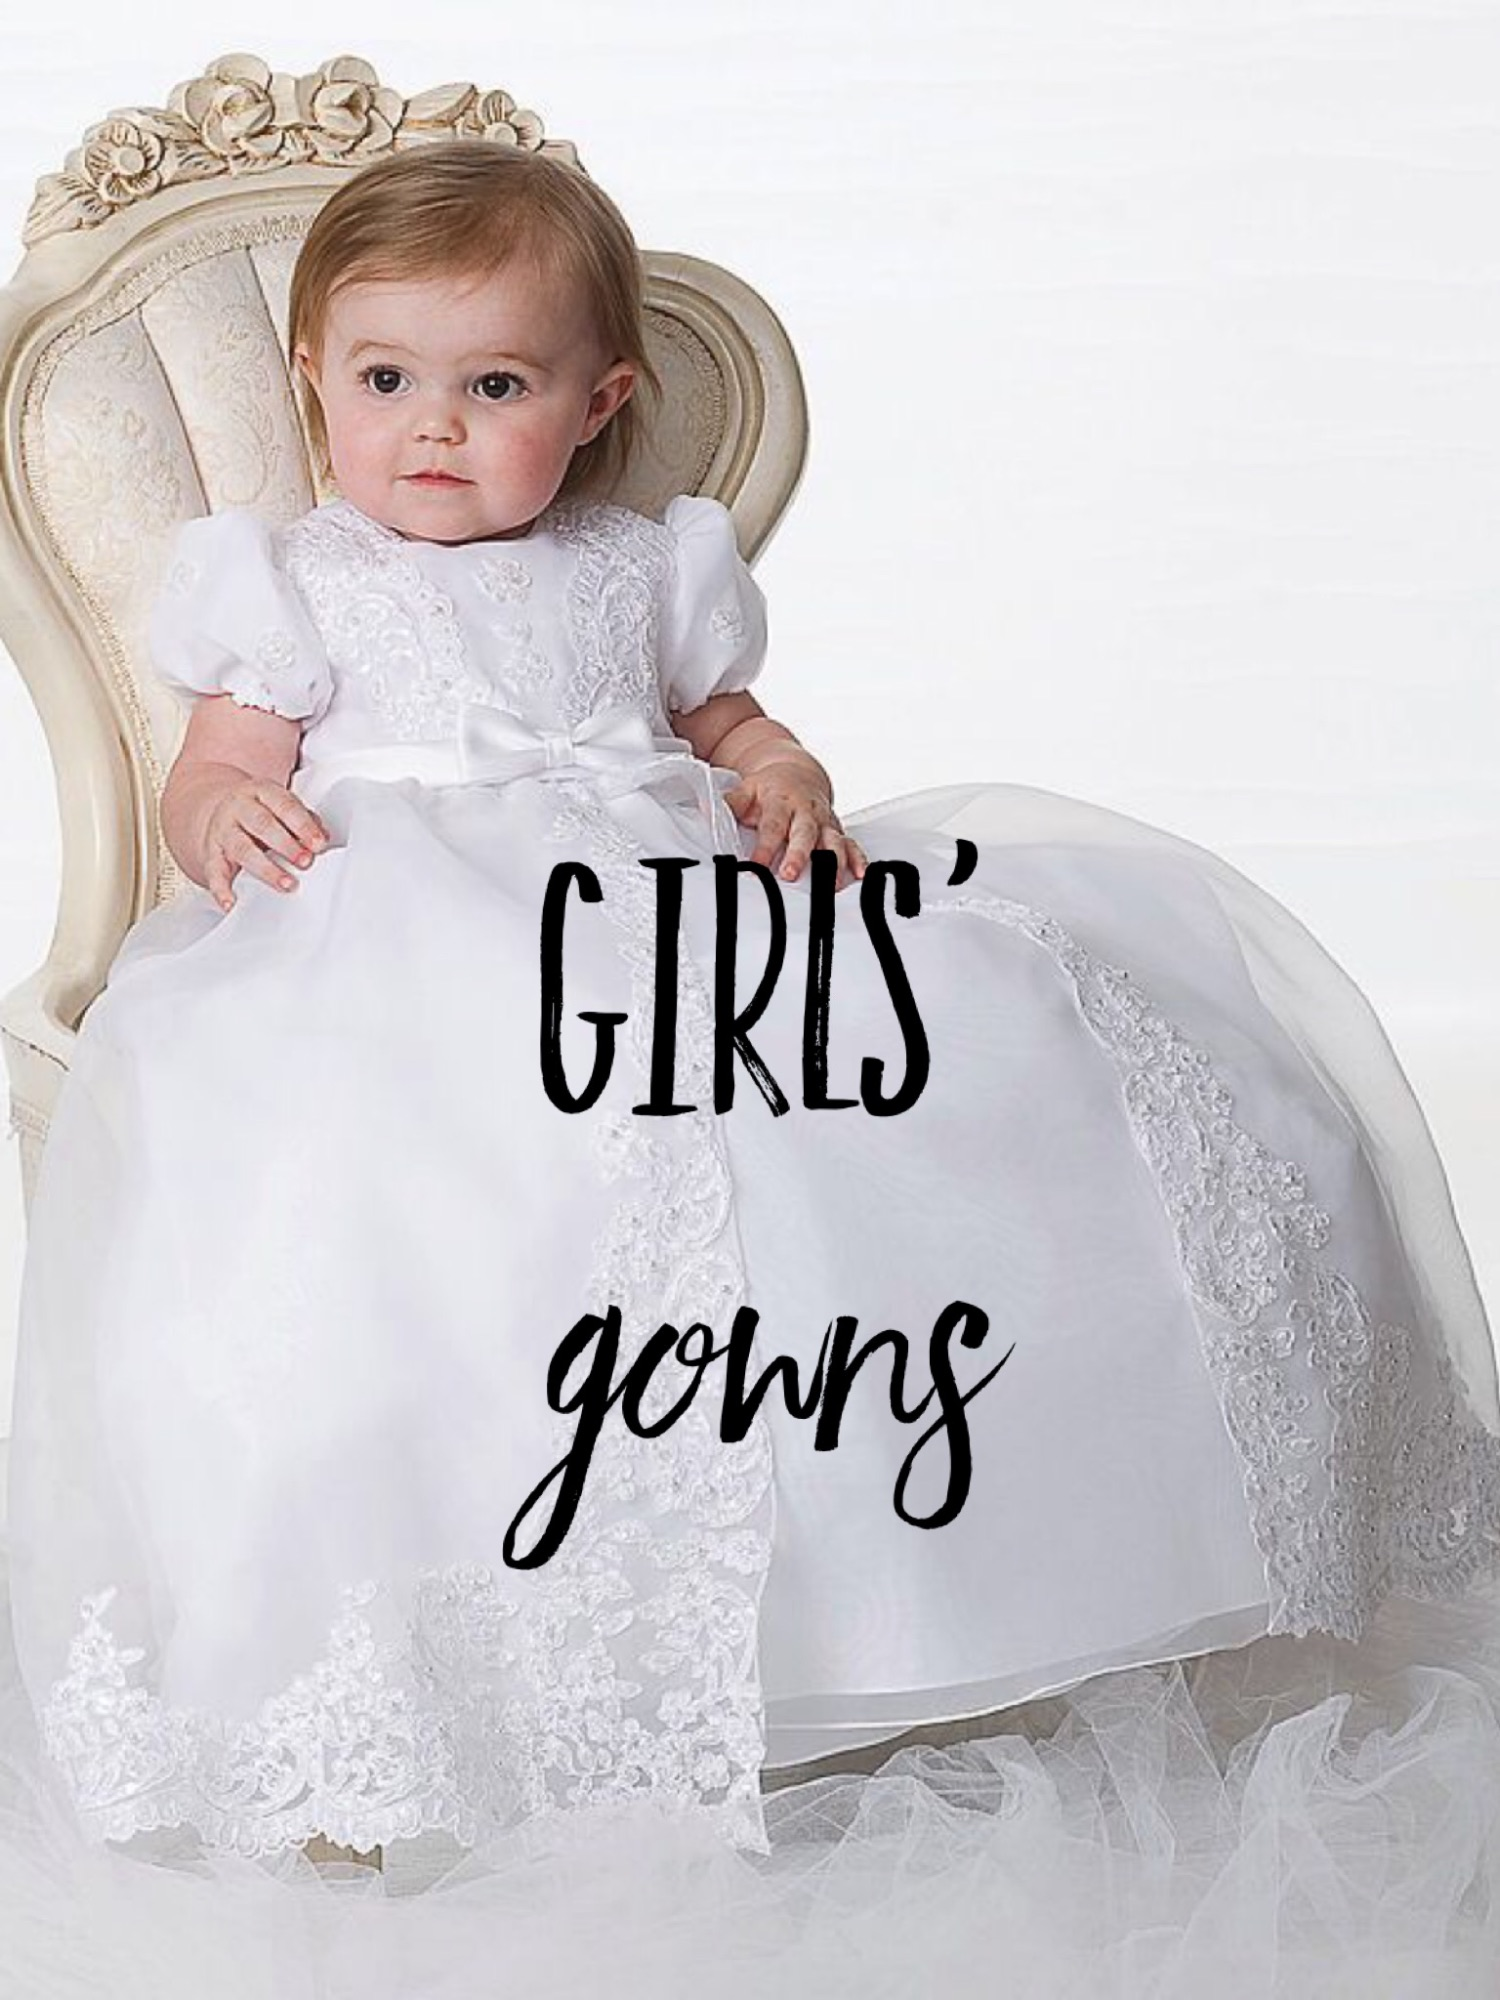 Toddler Pram Uk Christening Dresses Gowns Outfits For Baby Boys Girls